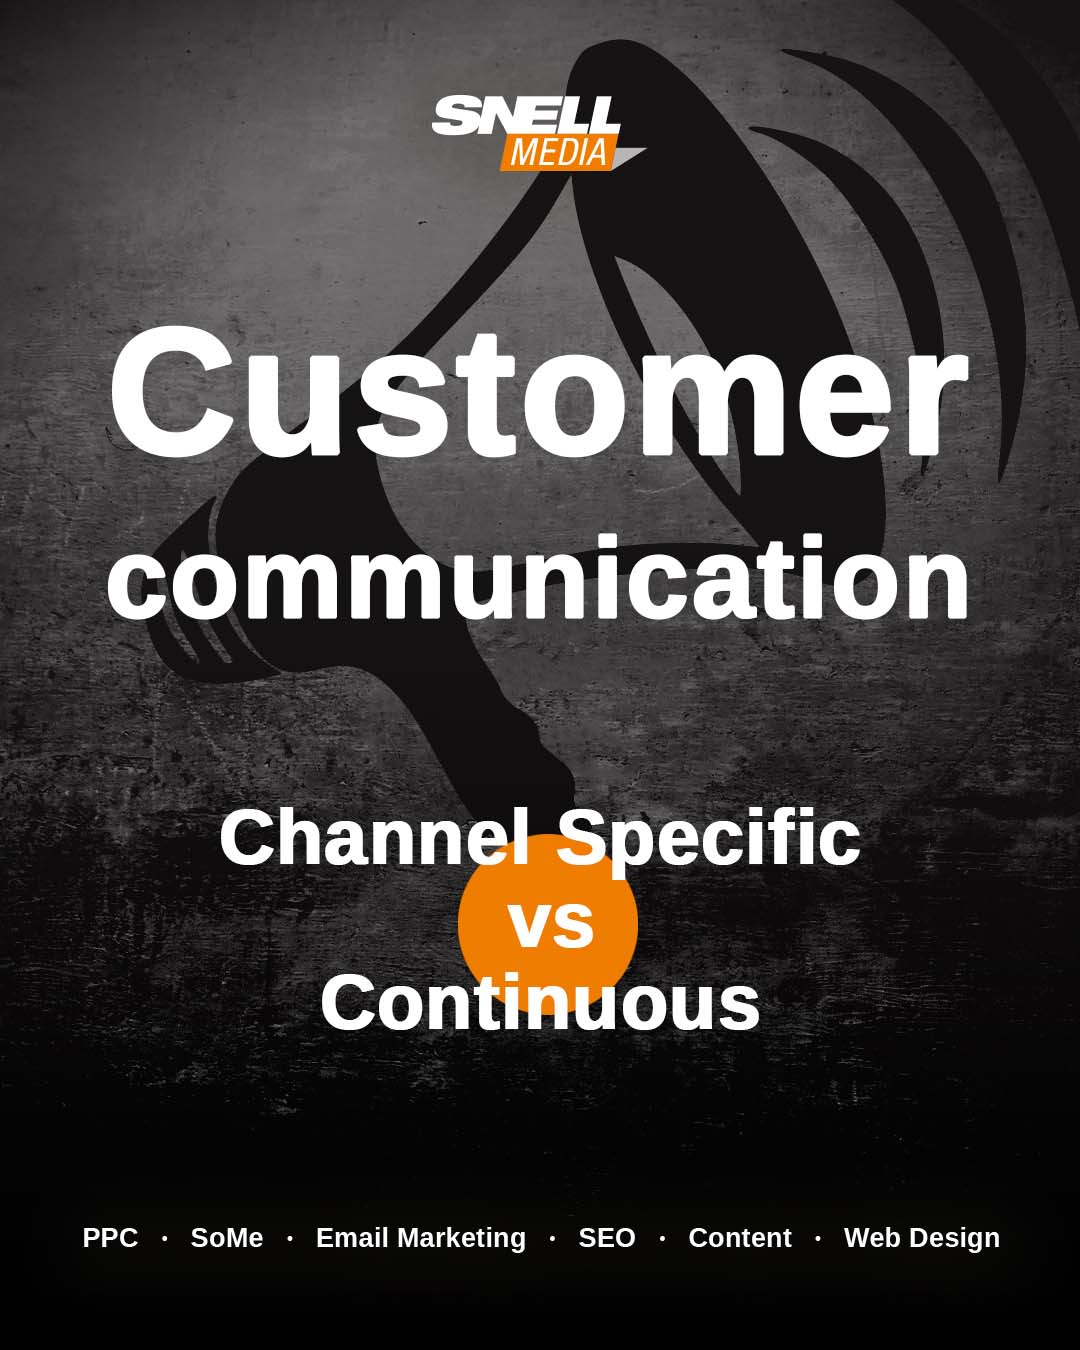 Customer Communication Channel Specific vs Continuous